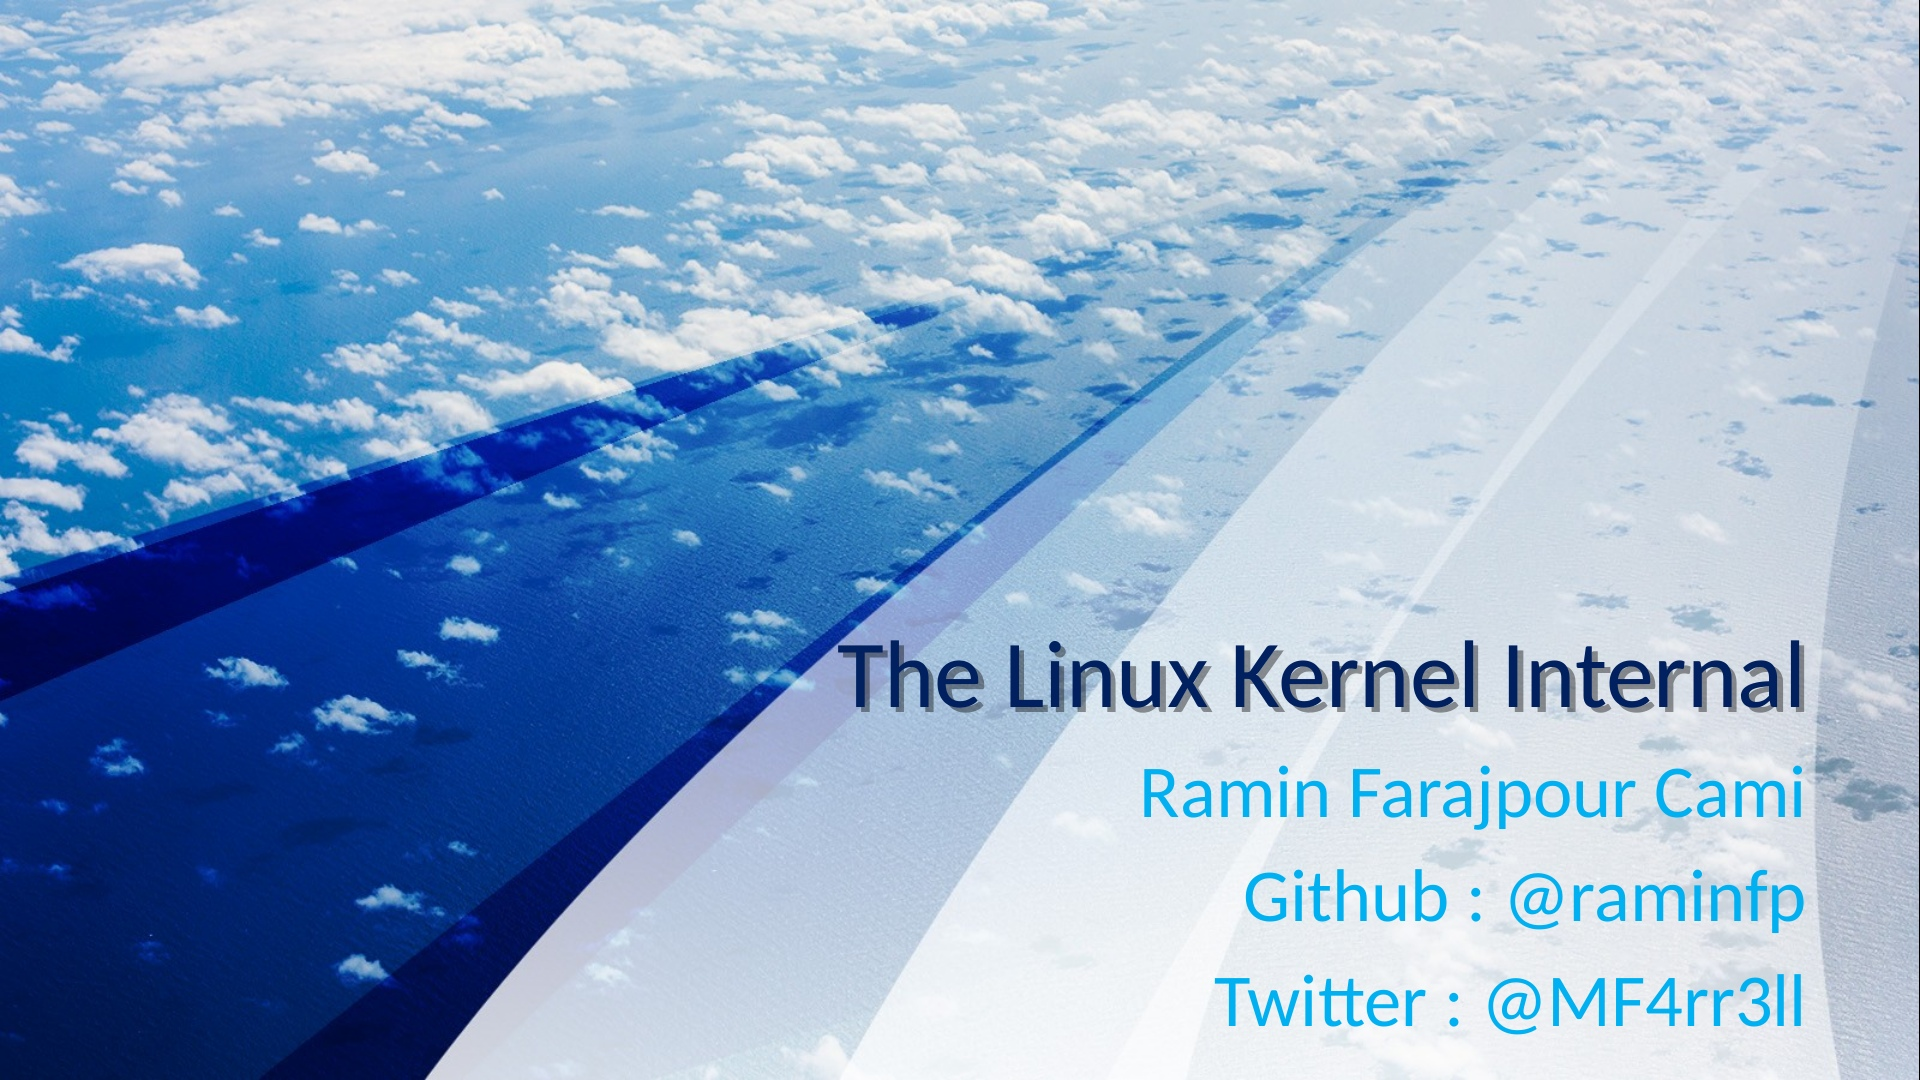 The Linux Kernel Internal